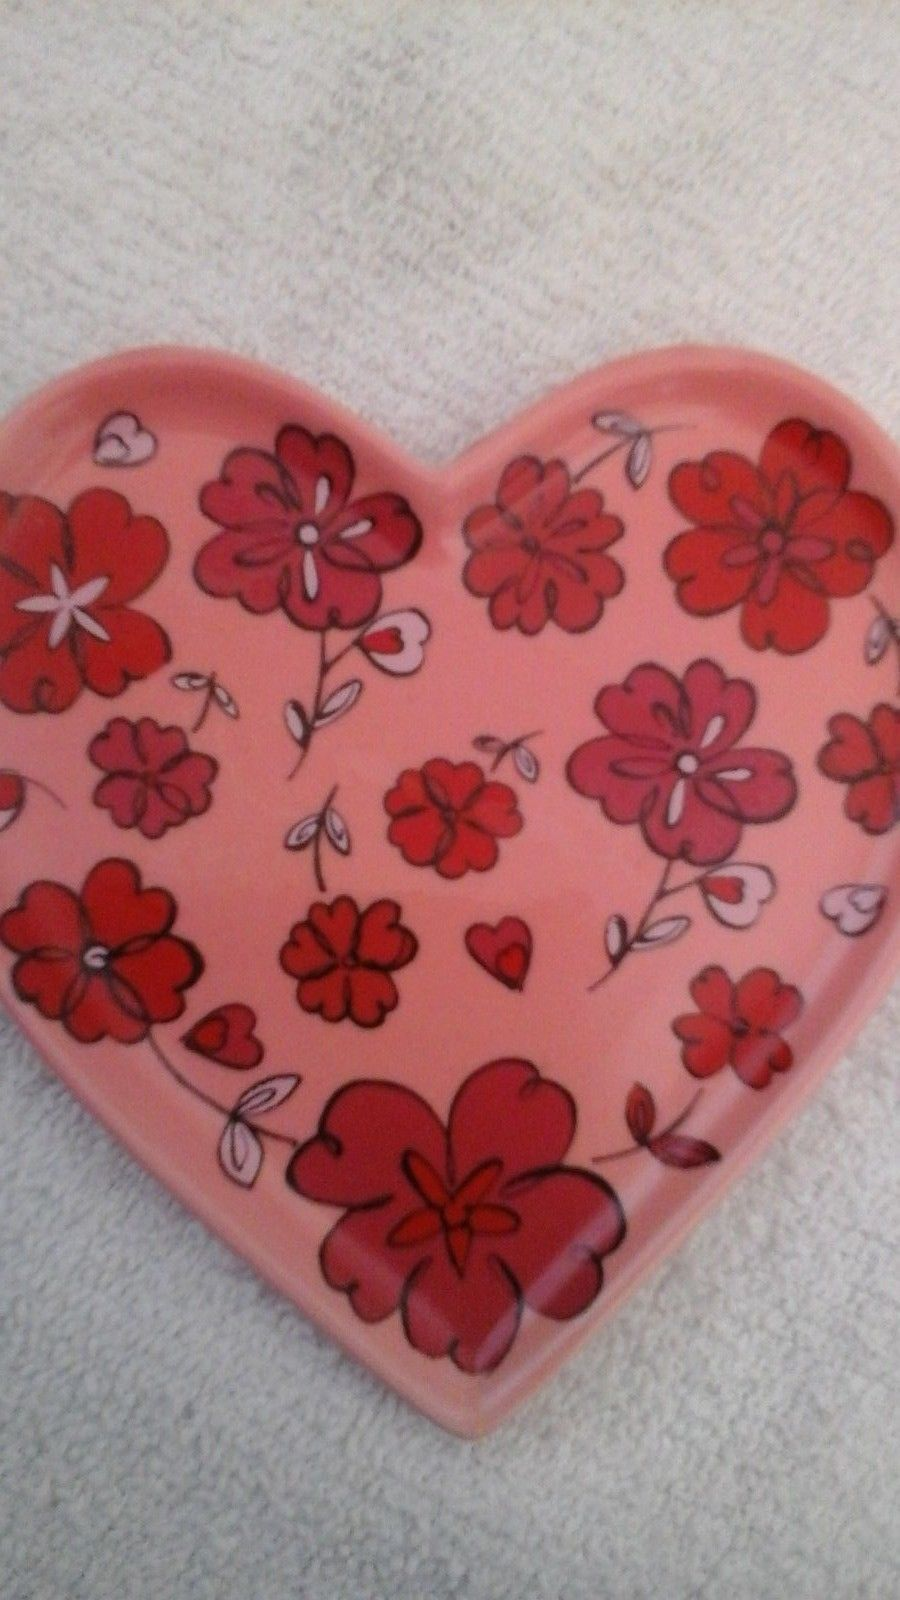 The White Barn Candle  Company  Ceramic  Heart Candle Trivet